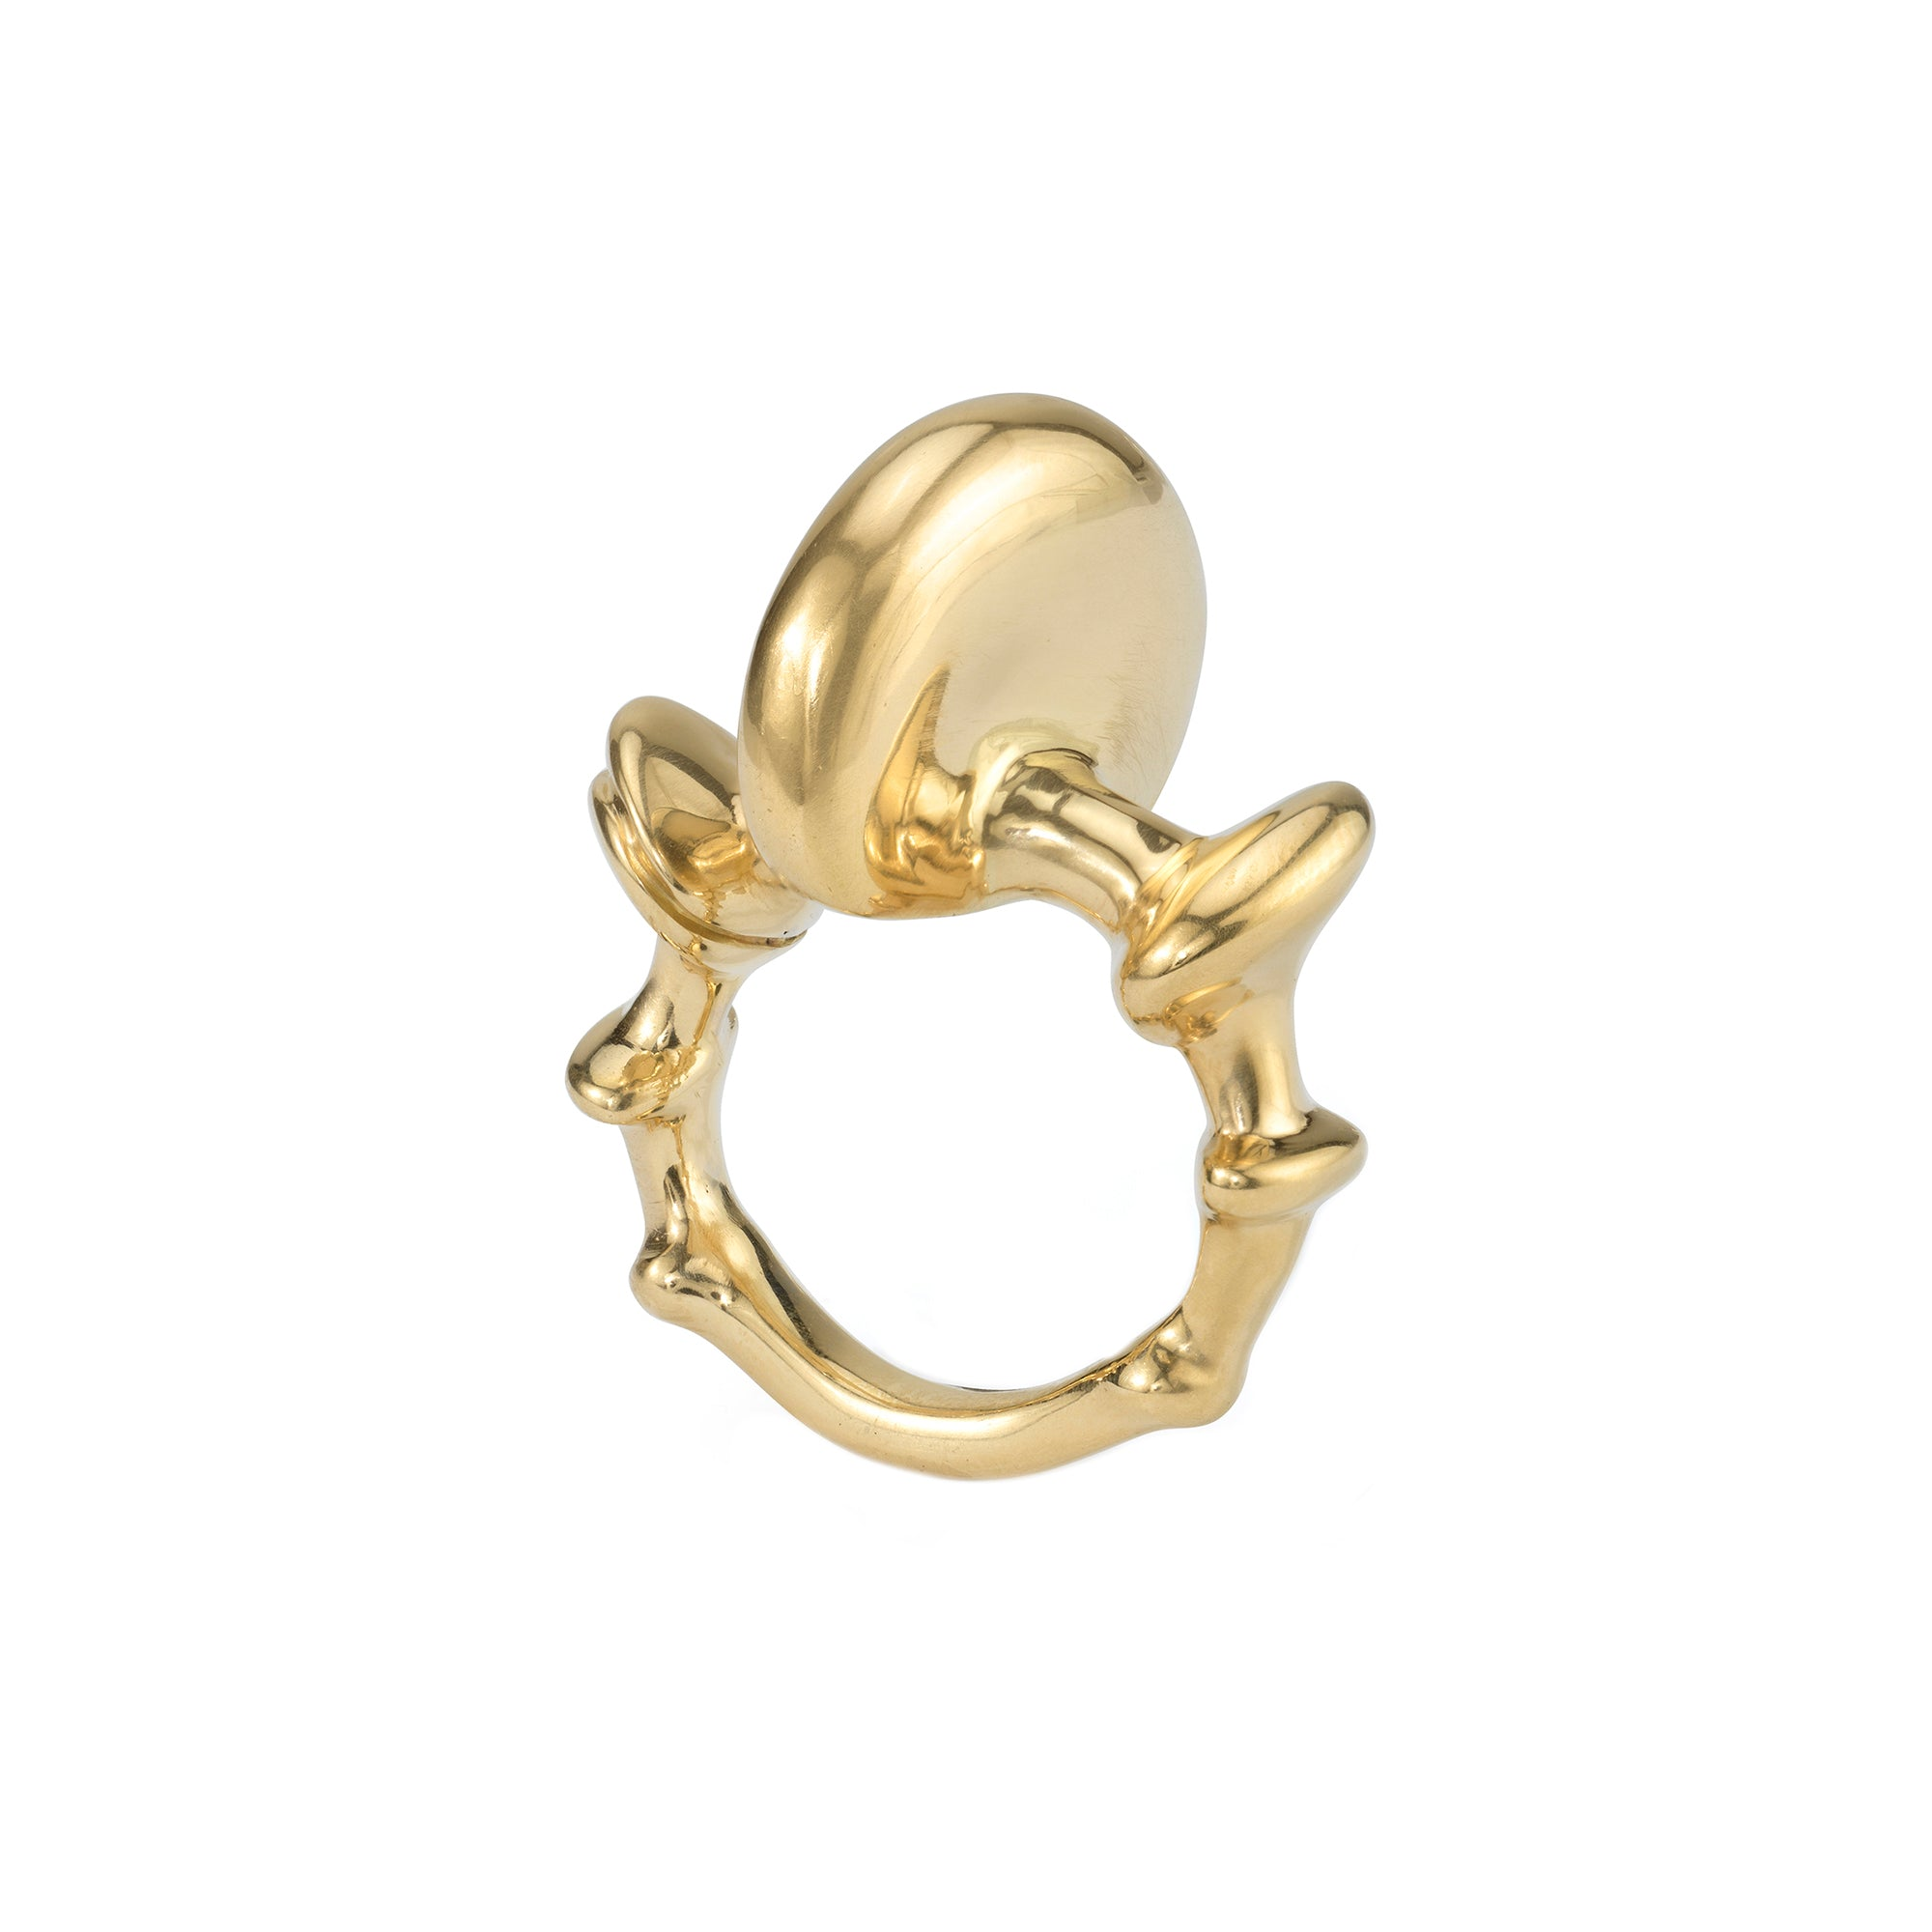 Chrona Hyper Band - Vram - Ring | Broken English Jewelry